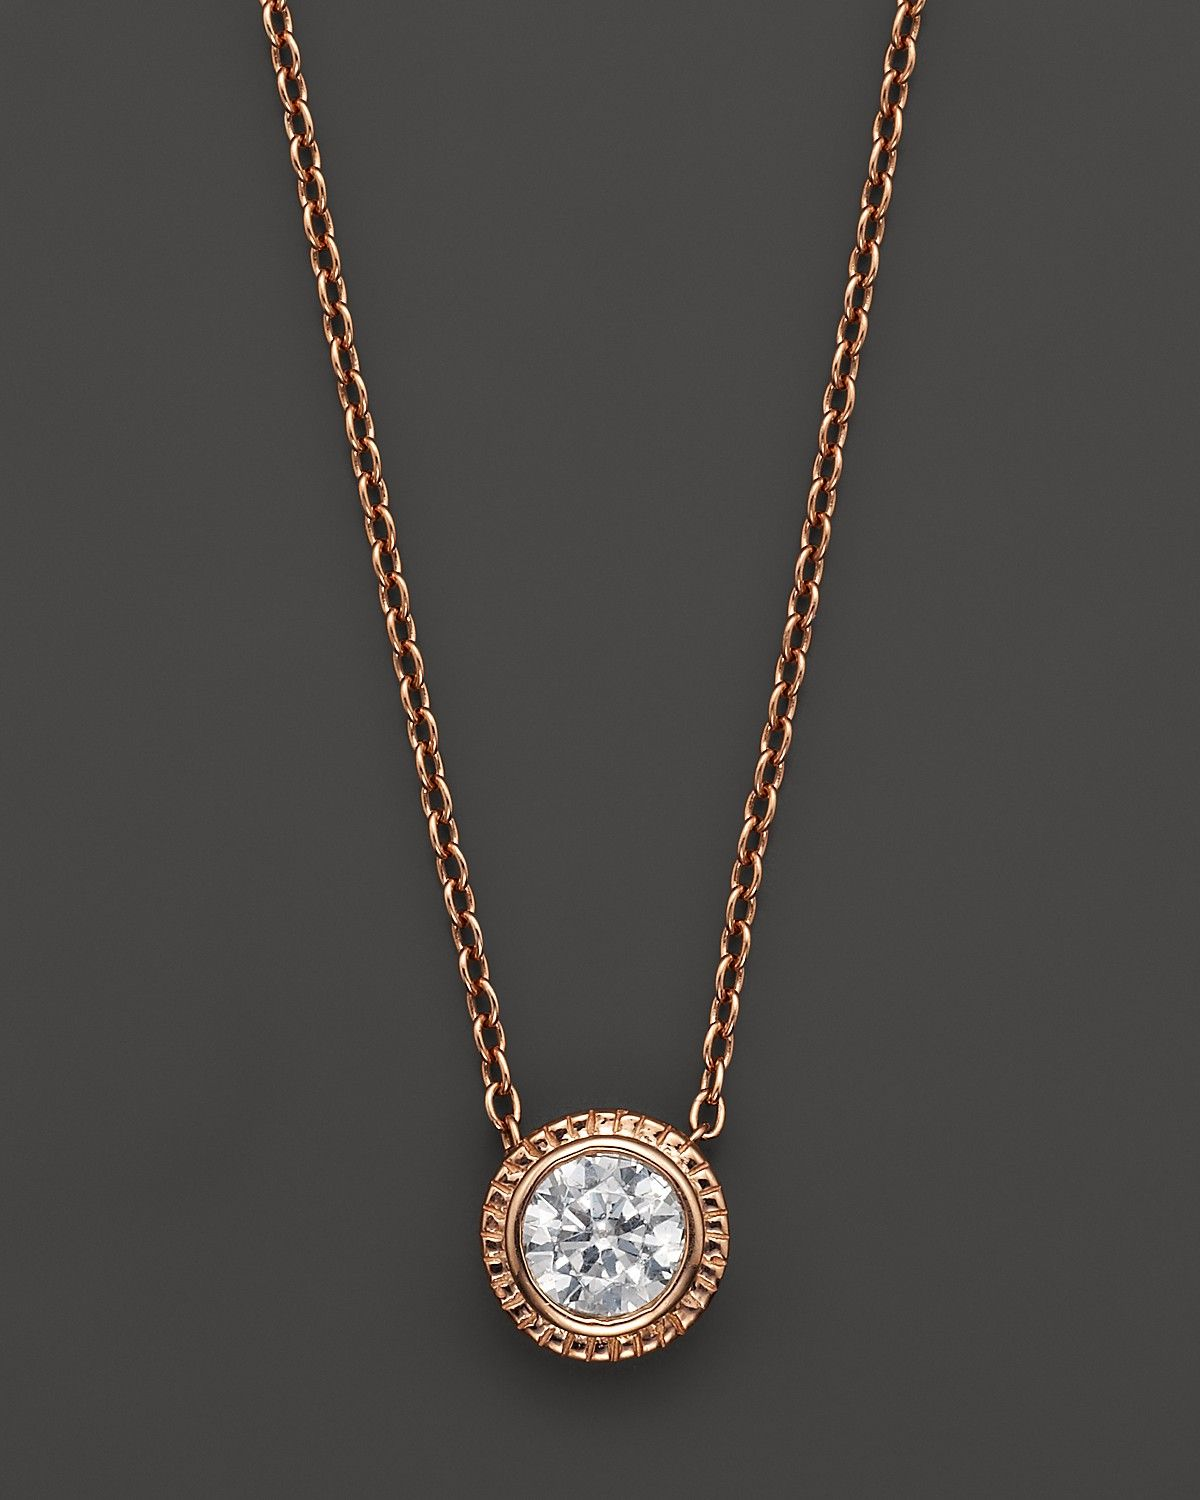 Diamond solitaire 14k rose gold pendant necklace 25 ct tw diamond solitaire 14k rose gold pendant necklace 25 ct tw bloomingdales wedding aloadofball Gallery